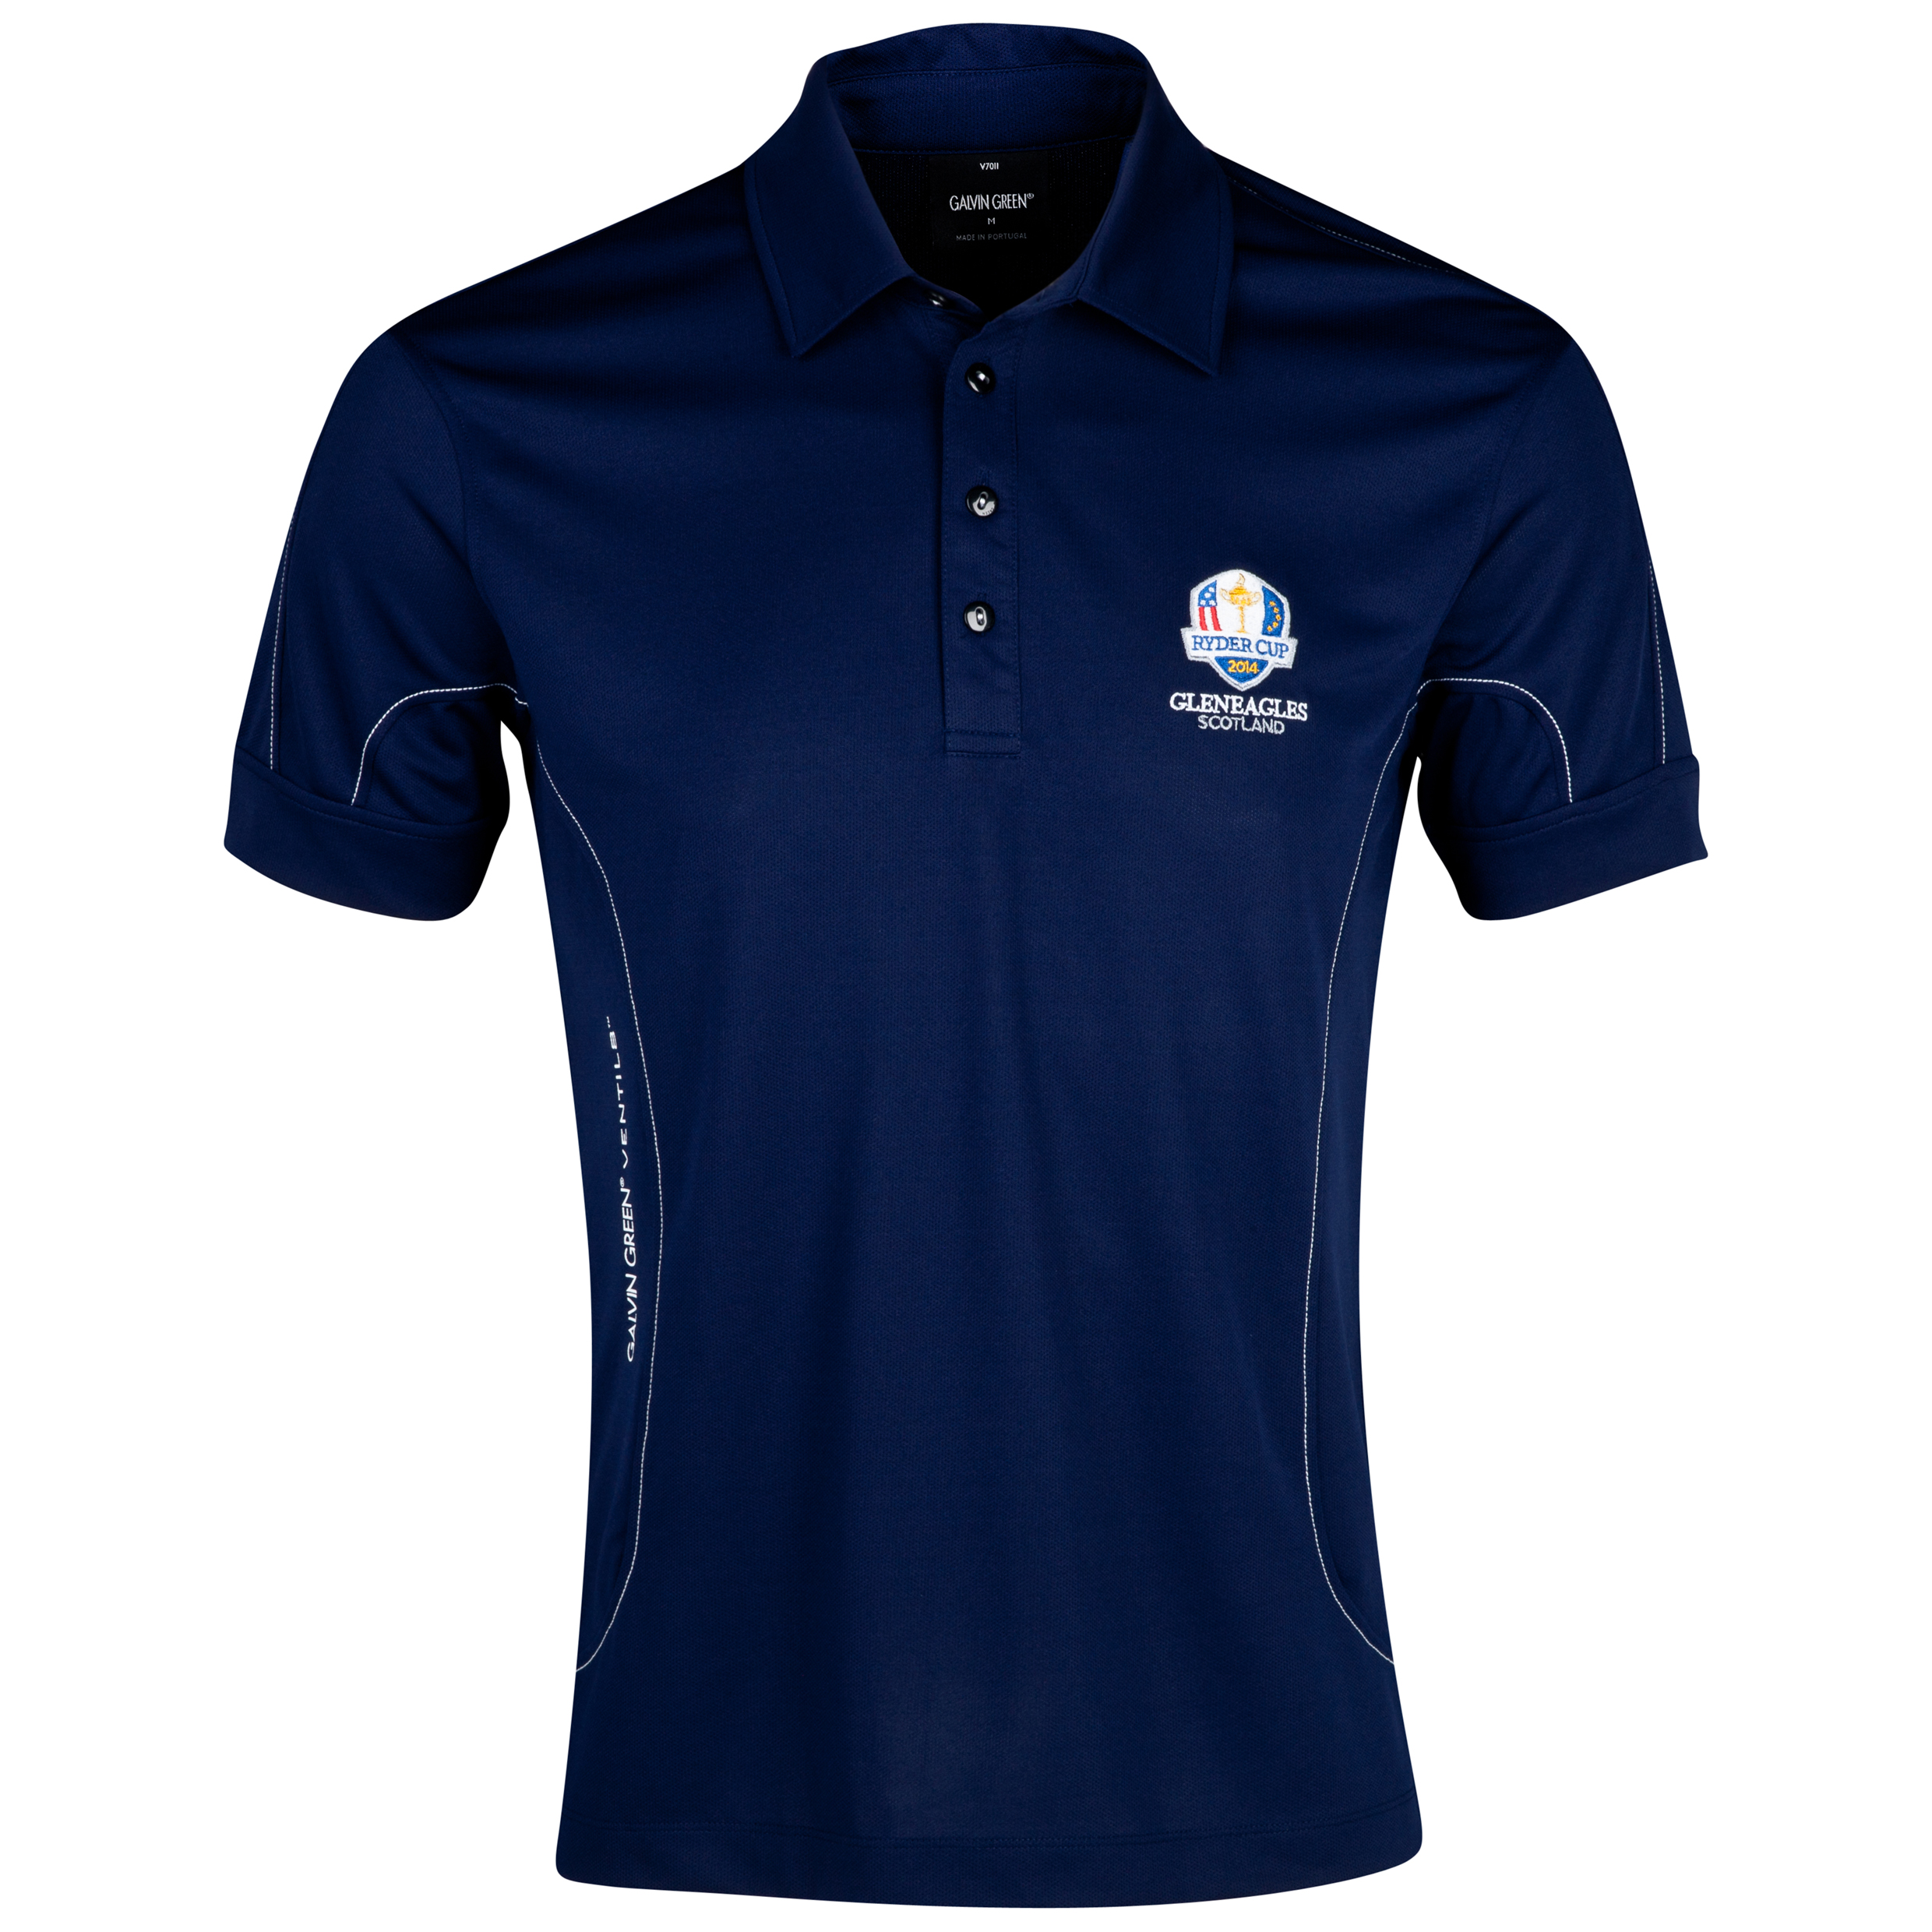 The Ryder Cup Gleneagles 2014 Galvin Green Murphy Ventil8 Technical Polo - Midnight Blue